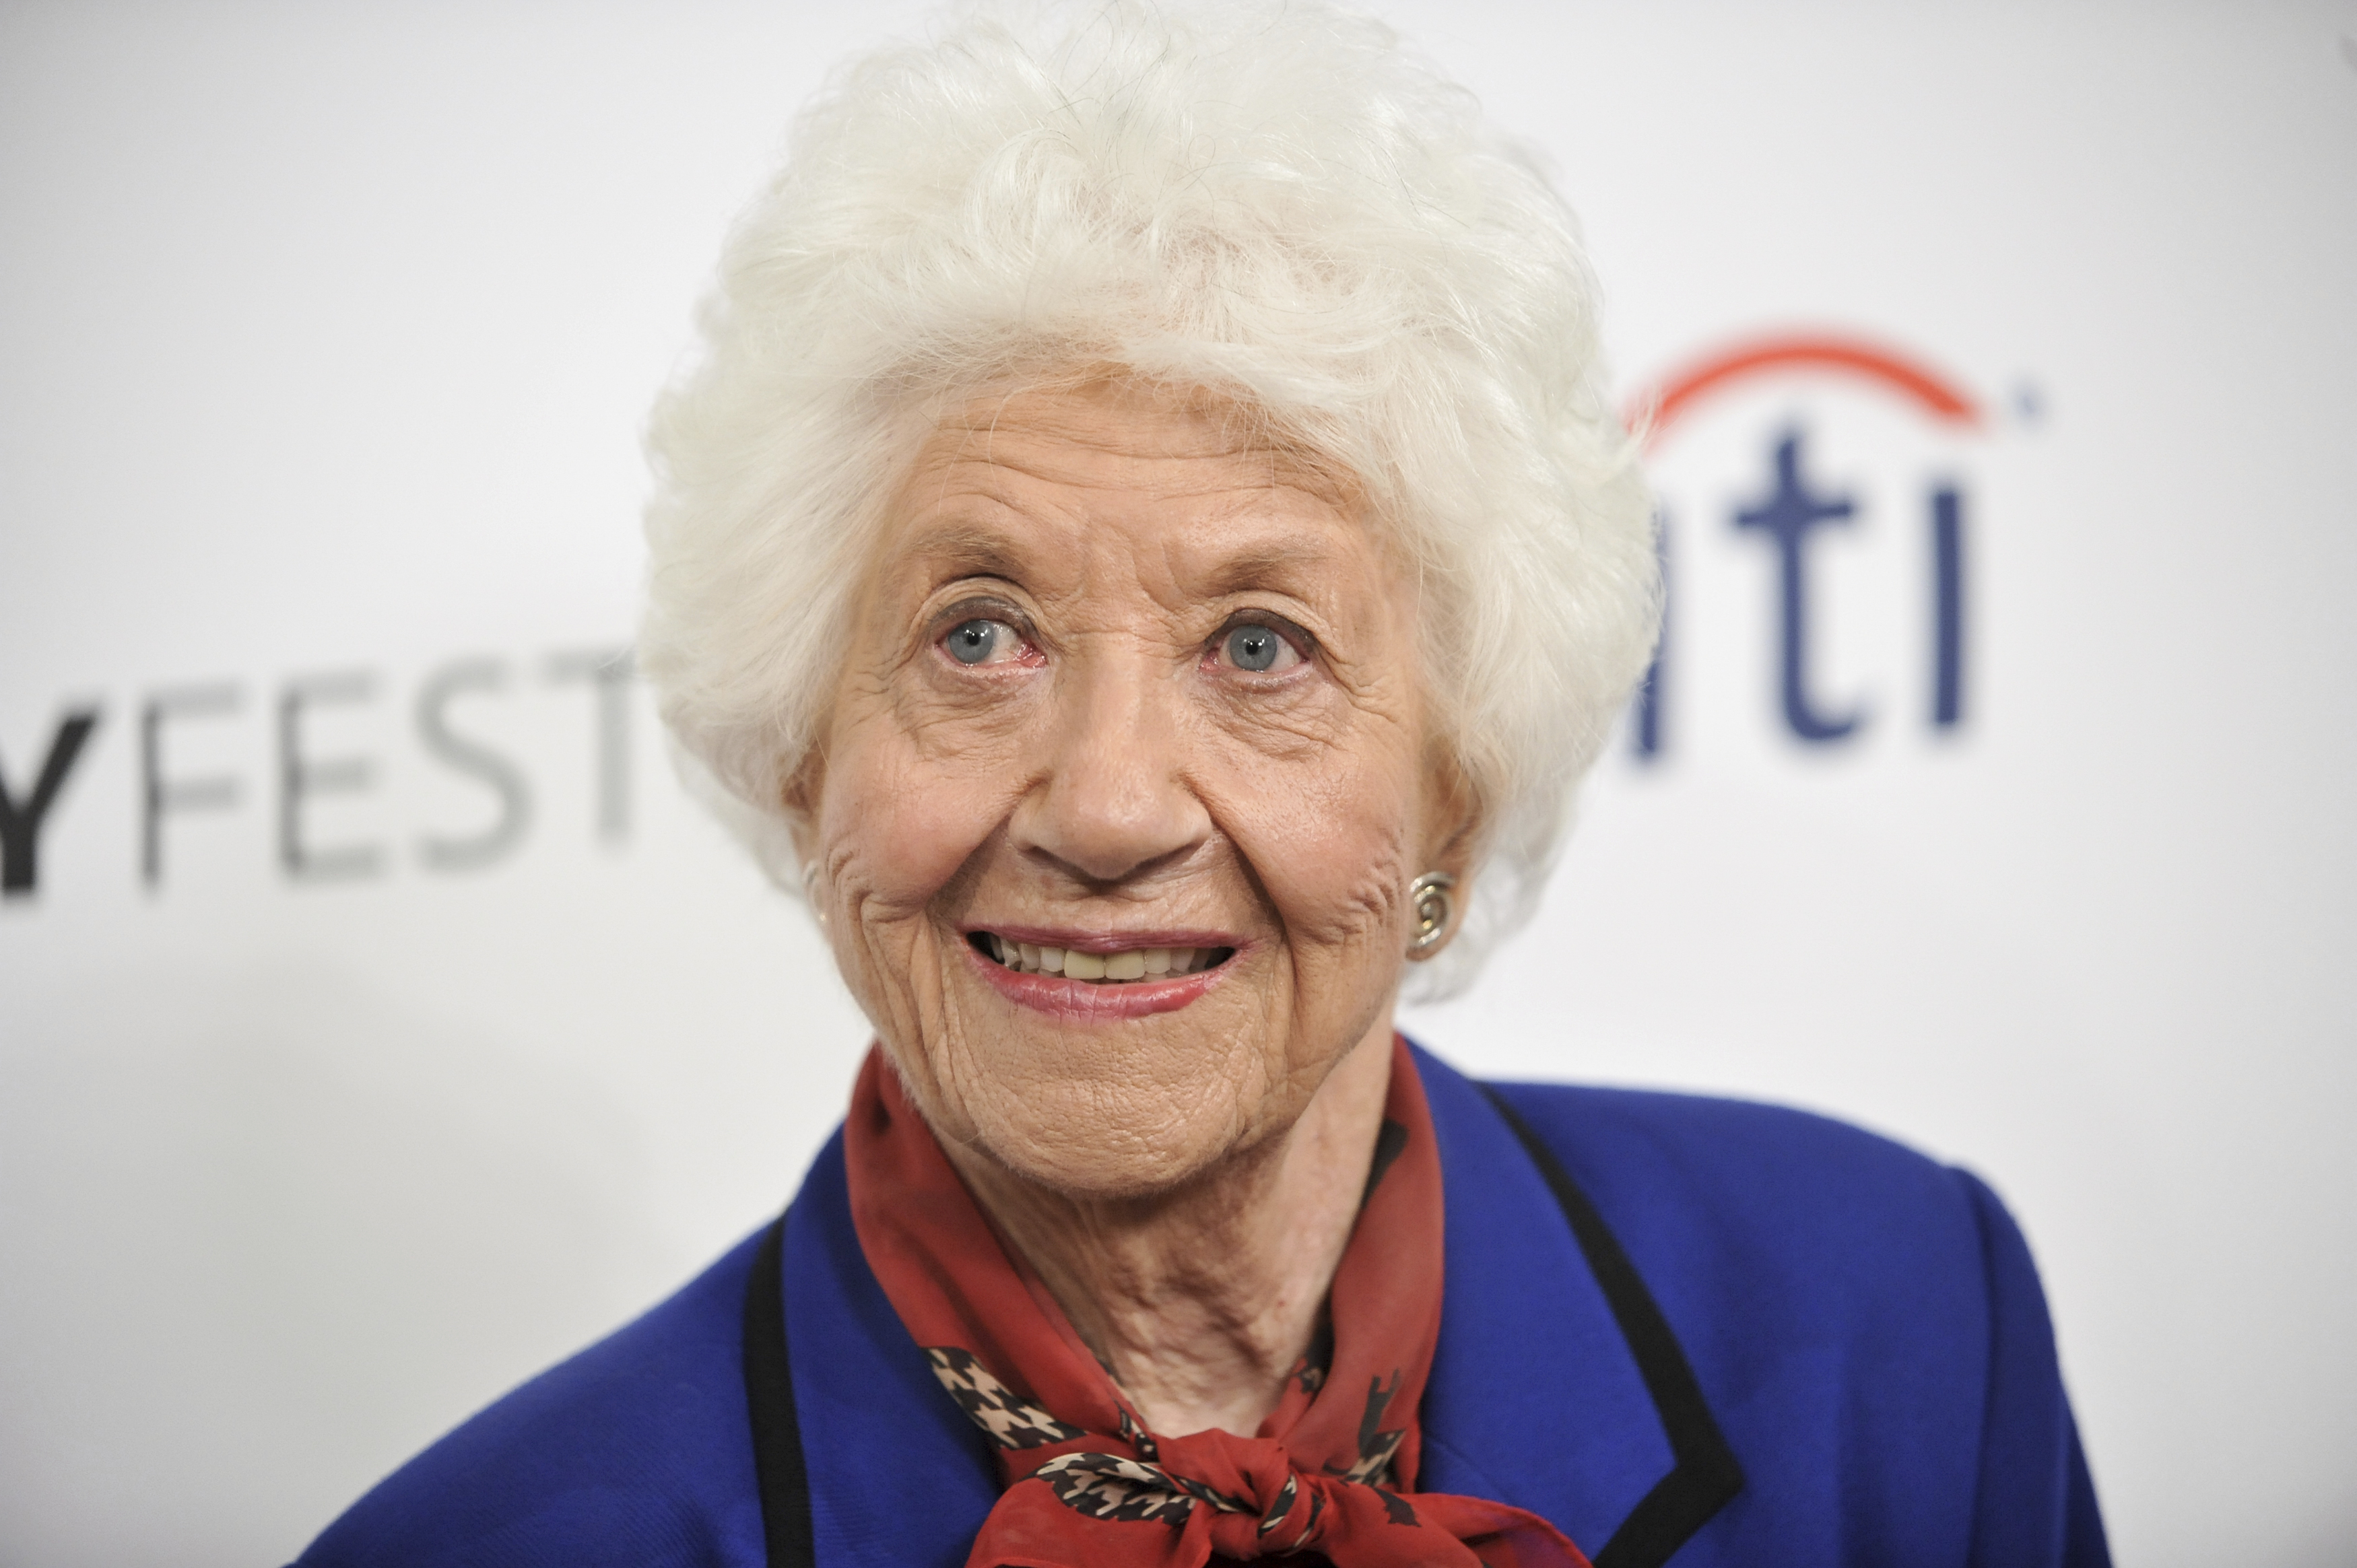 <div class='meta'><div class='origin-logo' data-origin='none'></div><span class='caption-text' data-credit='Richard Shotwell/Invision/AP'>Actress Charlotte Rae, who played the housemother on &#34;The Facts of Life,&#34; died Sunday, Aug. 5, 2018 at age 92.</span></div>